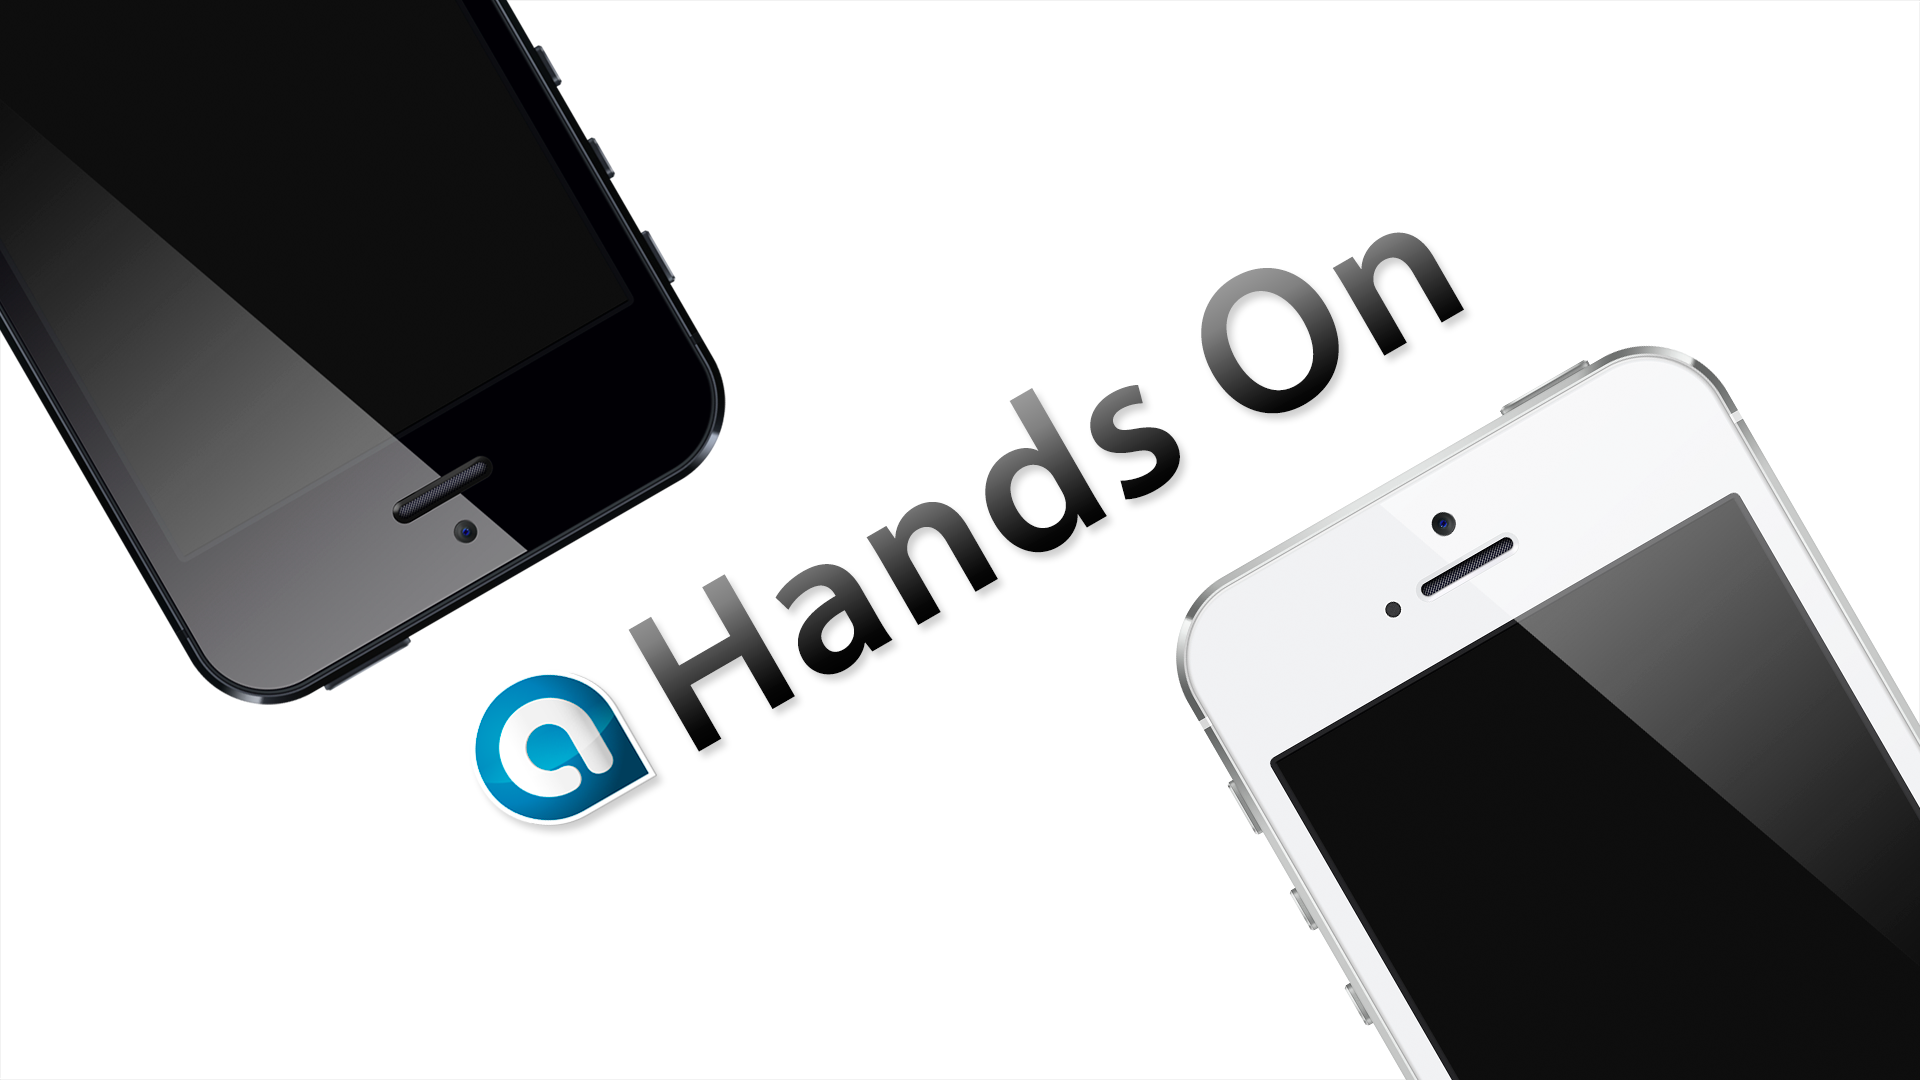 AppAdvice Goes Hands-On With The iPhone 5